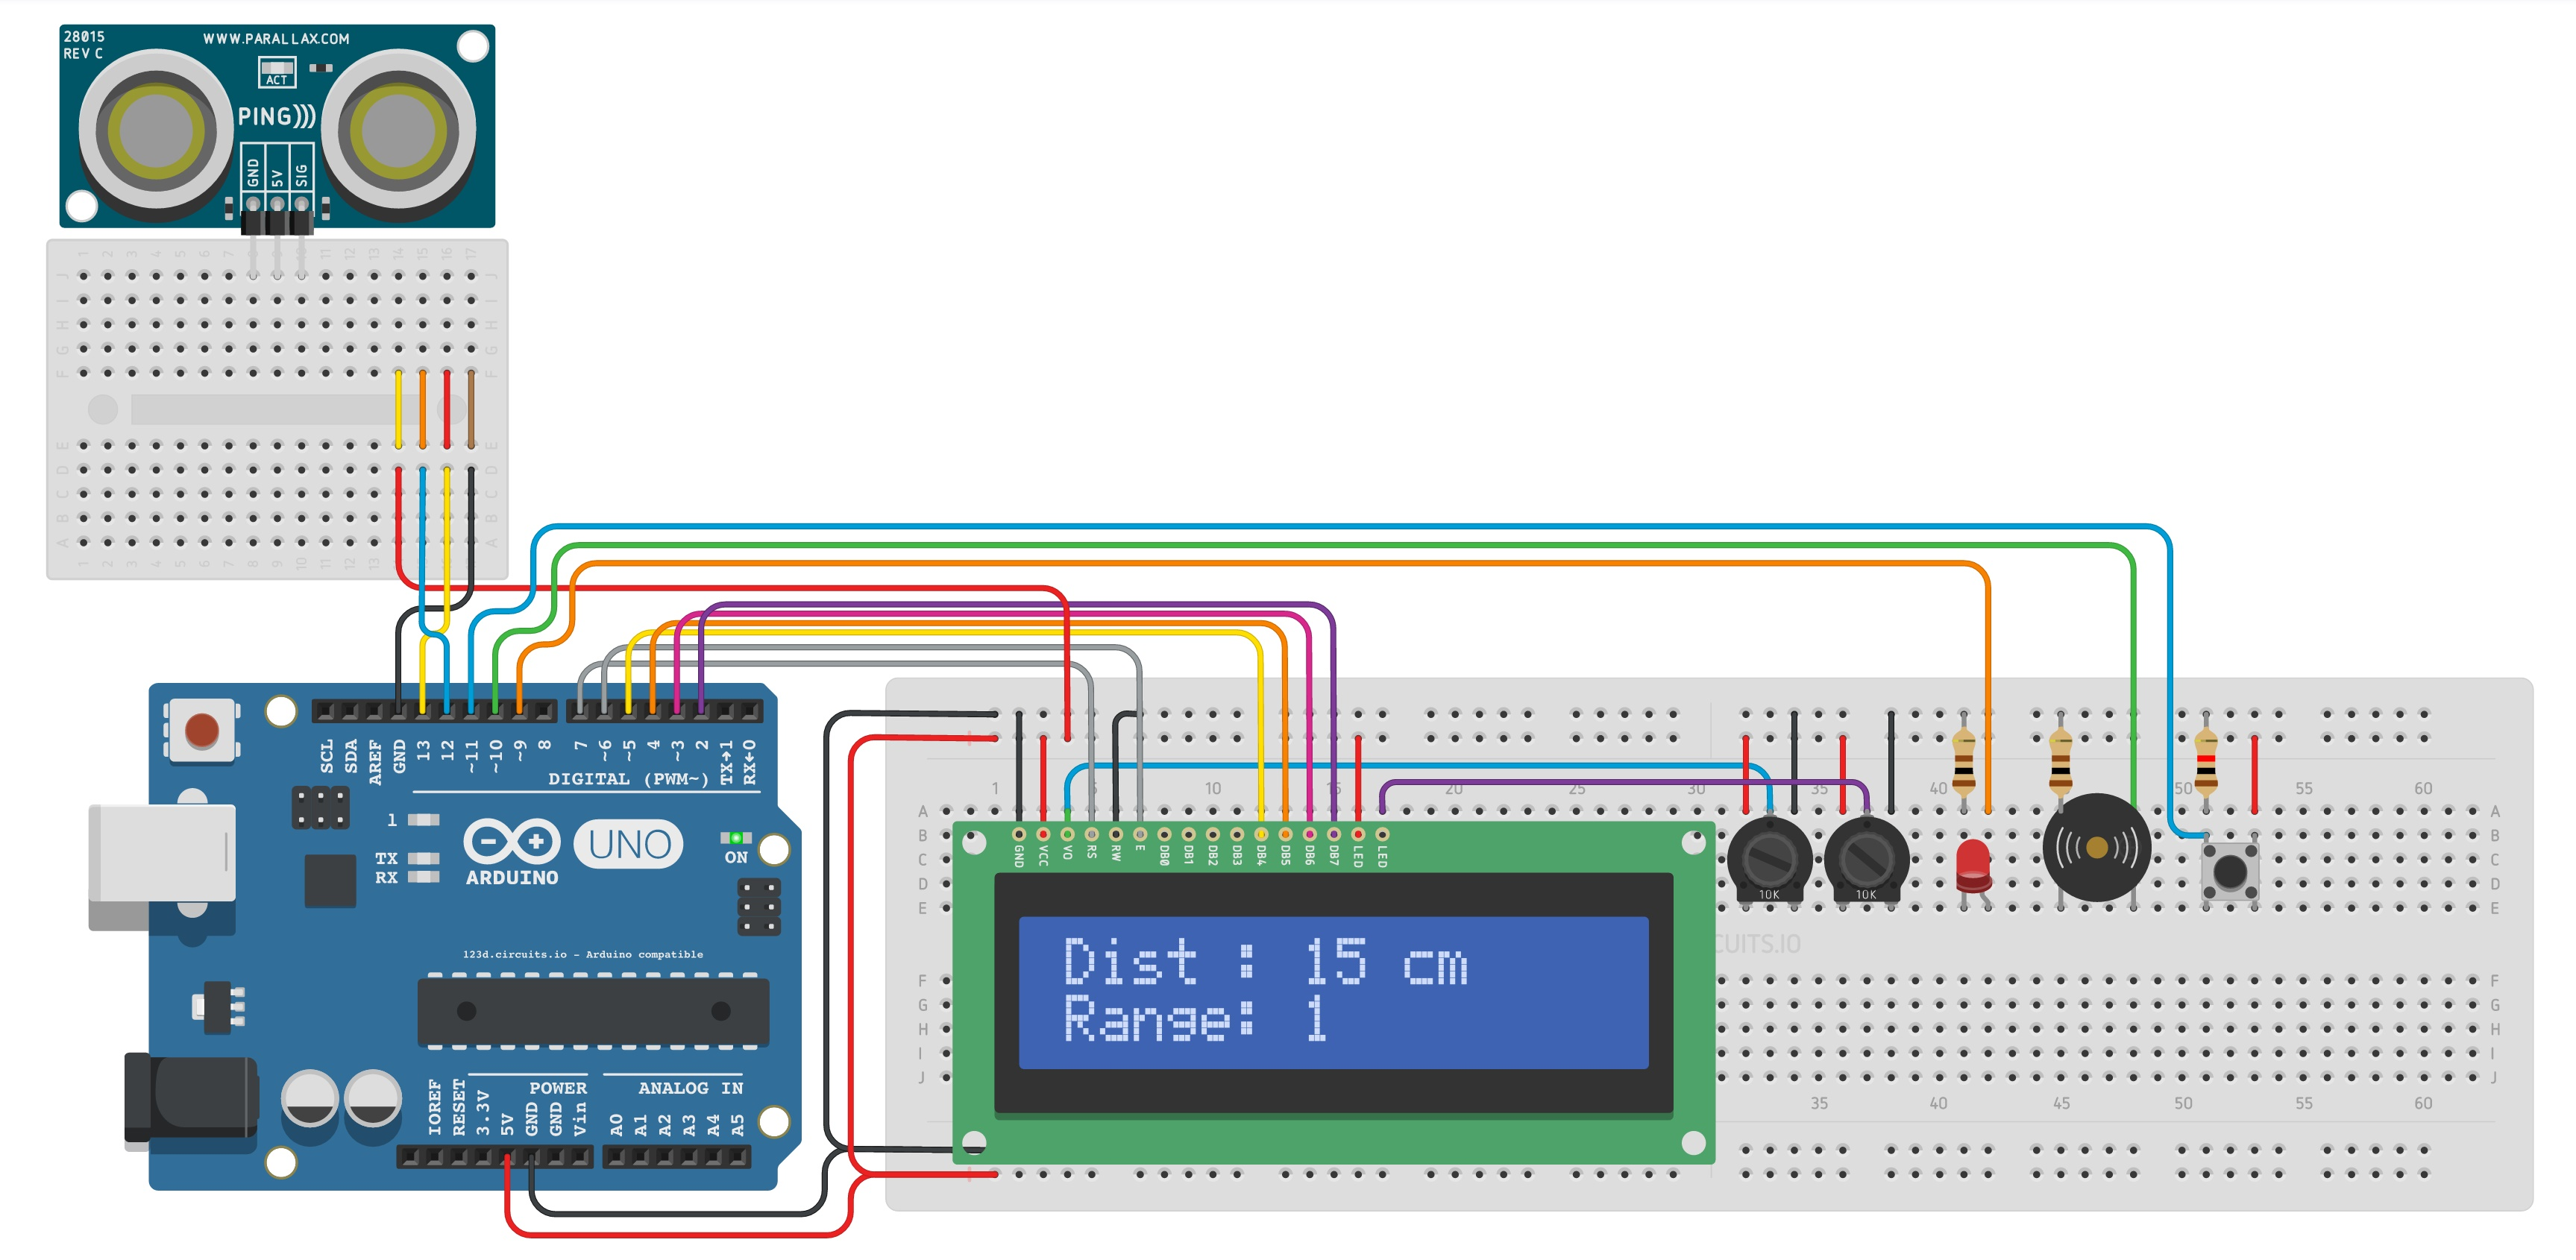 Github Jaimemartinsoler Distancesensor Arduino Ultrasonic Interfacing Sensors With Pic Microcontroller Distance Sensor Perfect For Cars Lcd Screen Led Buzzer And Pause Button Check A Real Time Emulation In Circuitsio